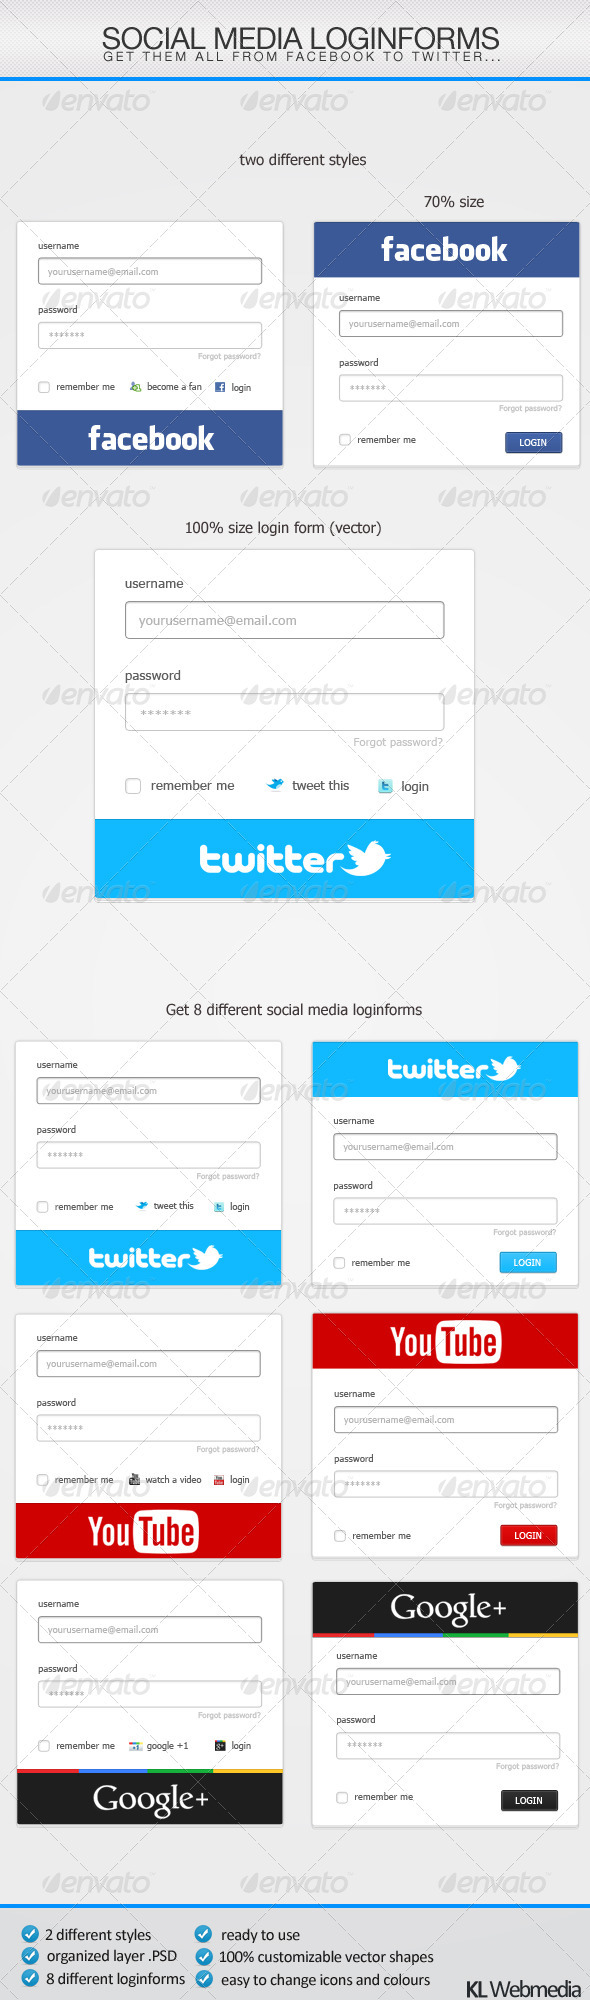 Social Media Loginforms by KL-Webmedia